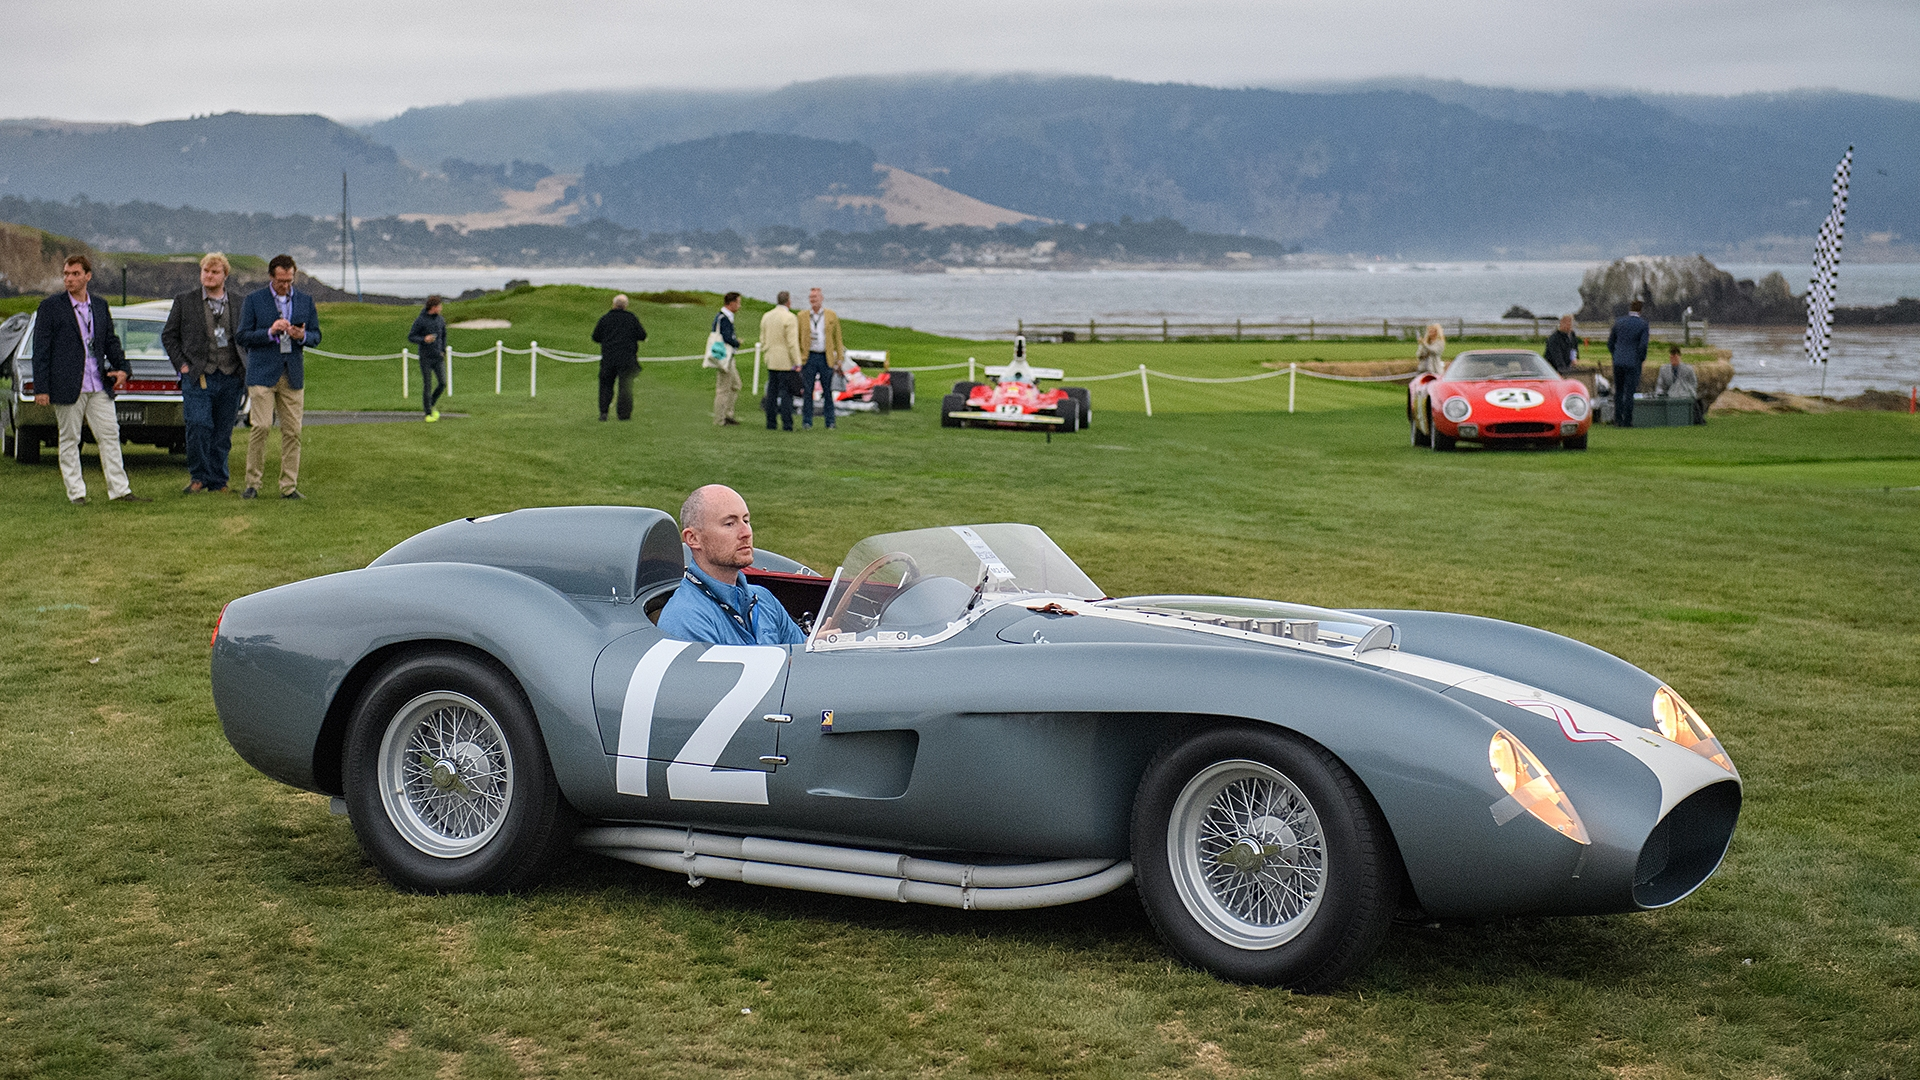 2017 Pebble Beach Concours d'Elegance: Photo gallery